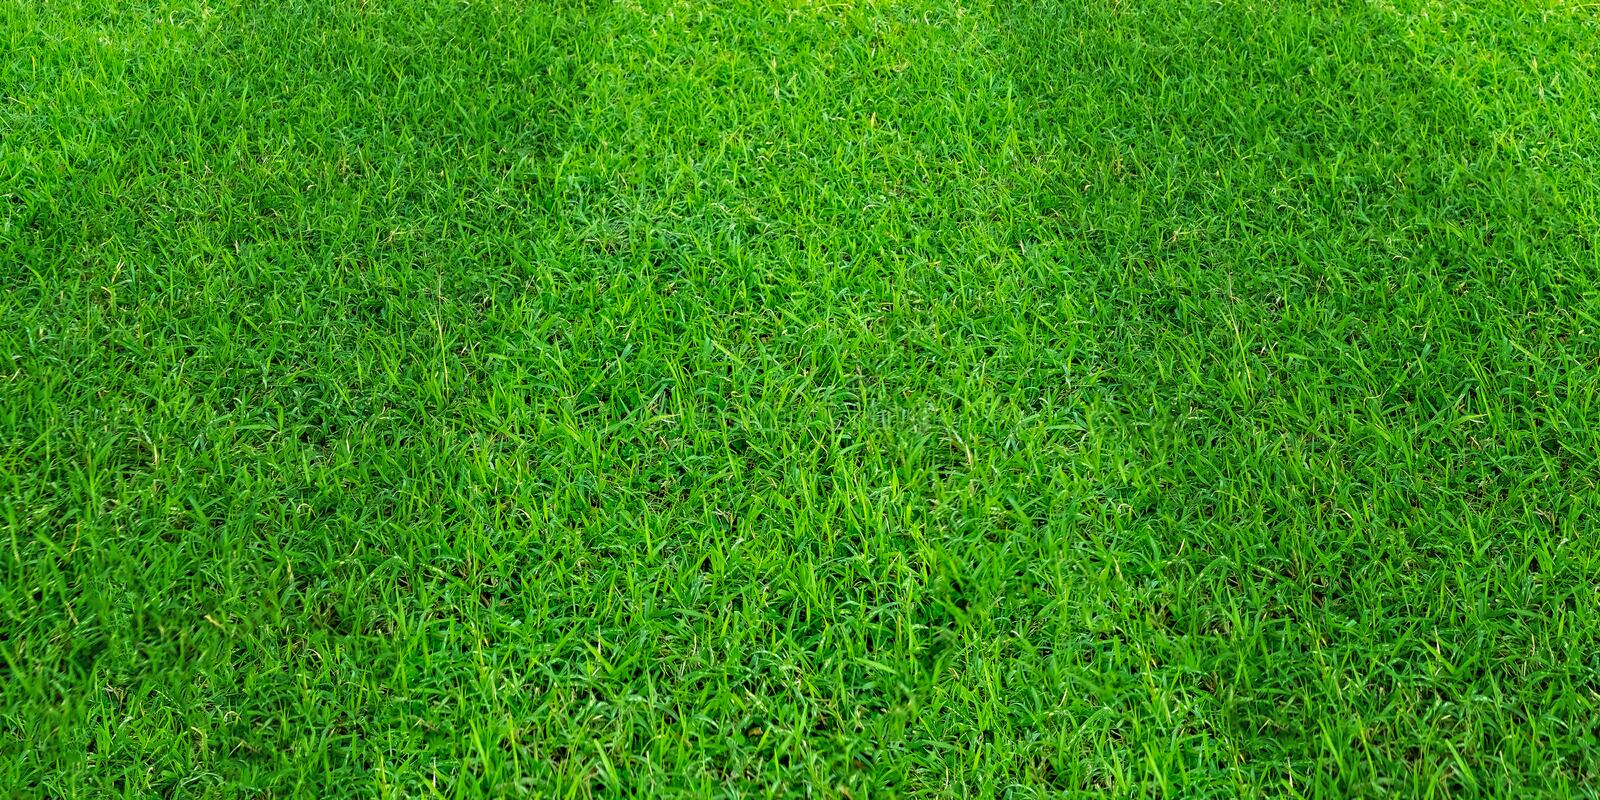 Green grass field pattern background for soccer and football sports. Green lawn texture background. Green grass field pattern background for soccer and football royalty free stock photos